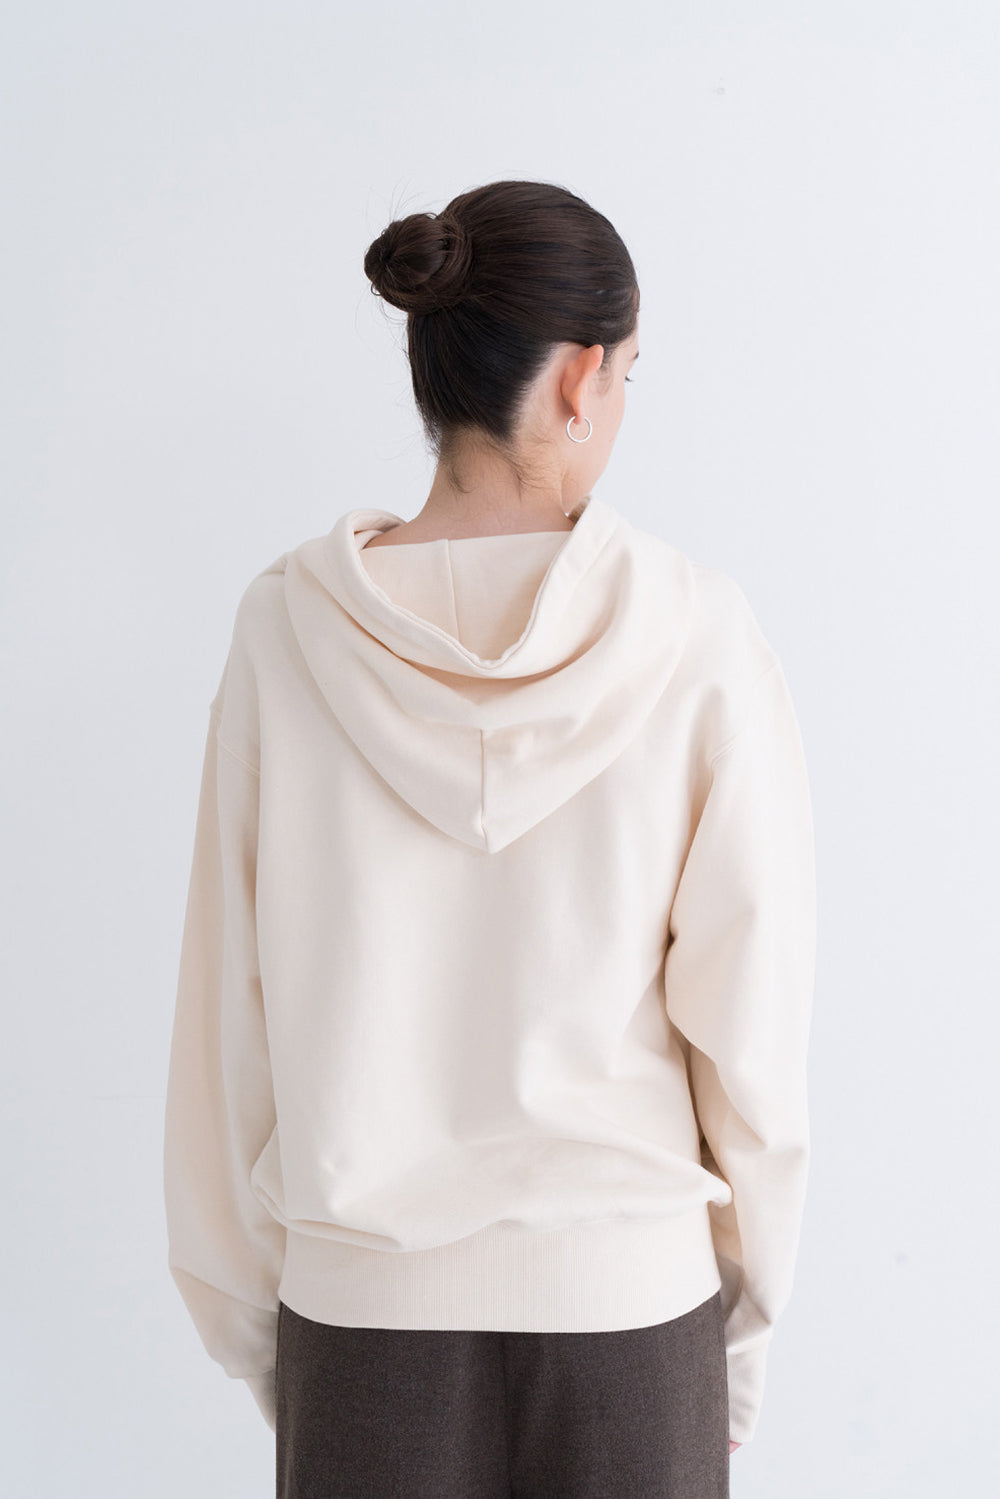 NOTA Signal String Hood Ivory Modest Loose-Fitting Ladies Sweater With Long Sleeves, Front Pockets, Drawstring Hoodie 100% Cotton